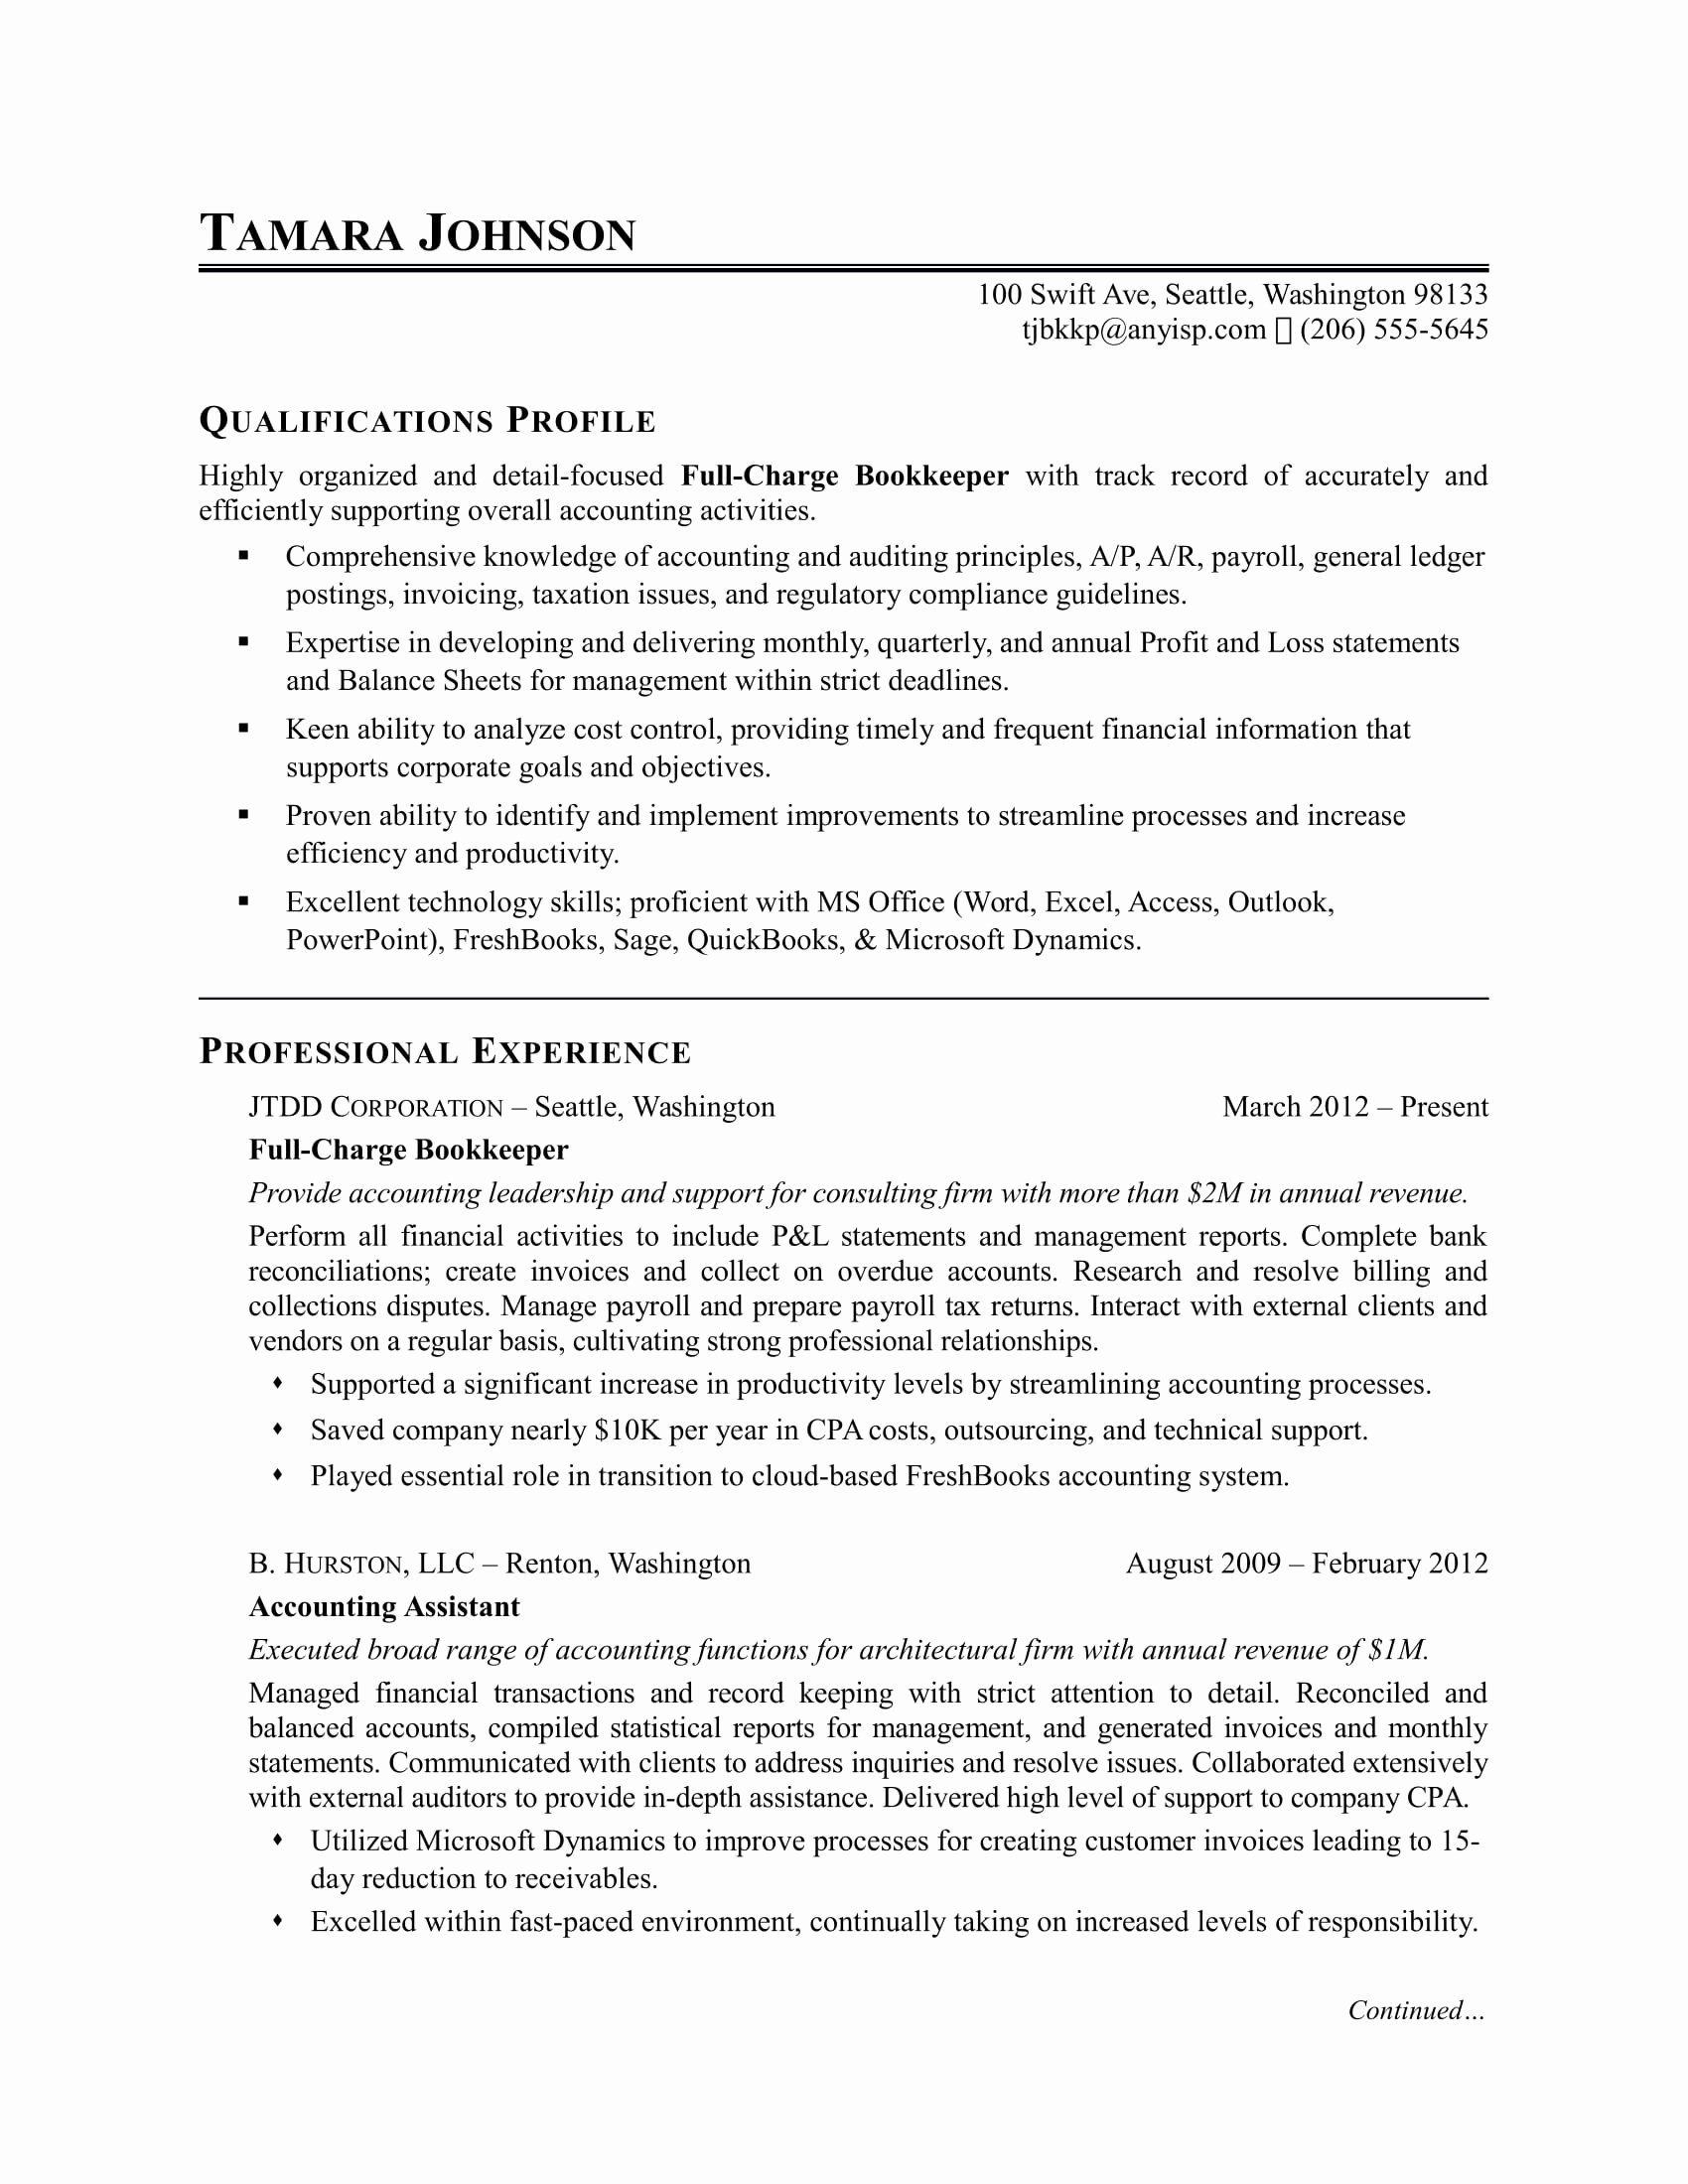 General Ledger Accountant Resume Lovely Bookkeeper Resume Sample In 2020 Accountant Resume Bookkeeping Resume Writing Services